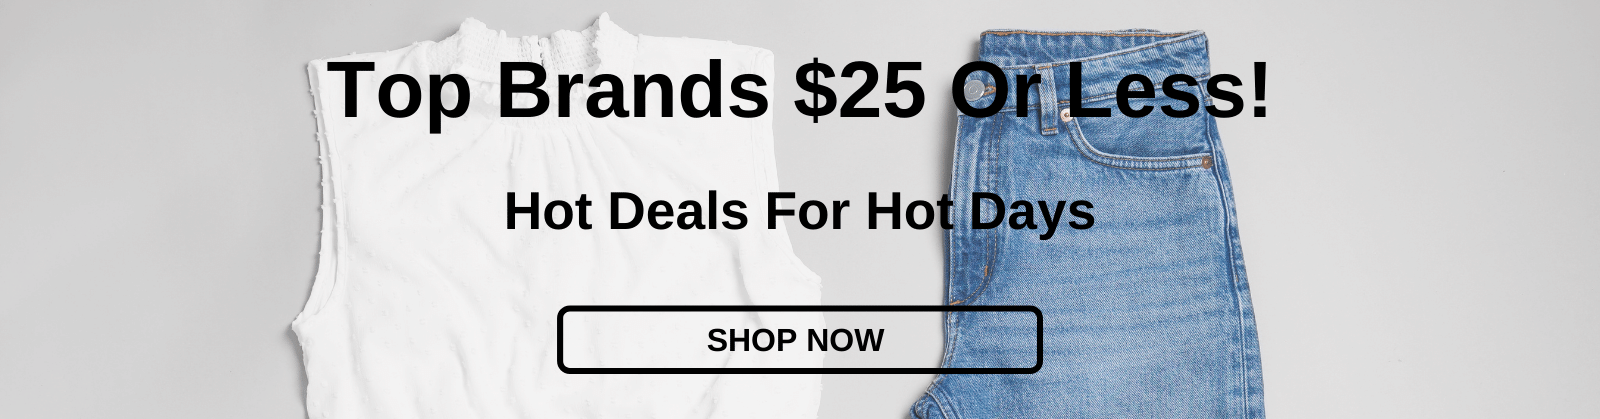 Top Brands $25 Or Less! Hot Deals For Hot Days [Shop Now]